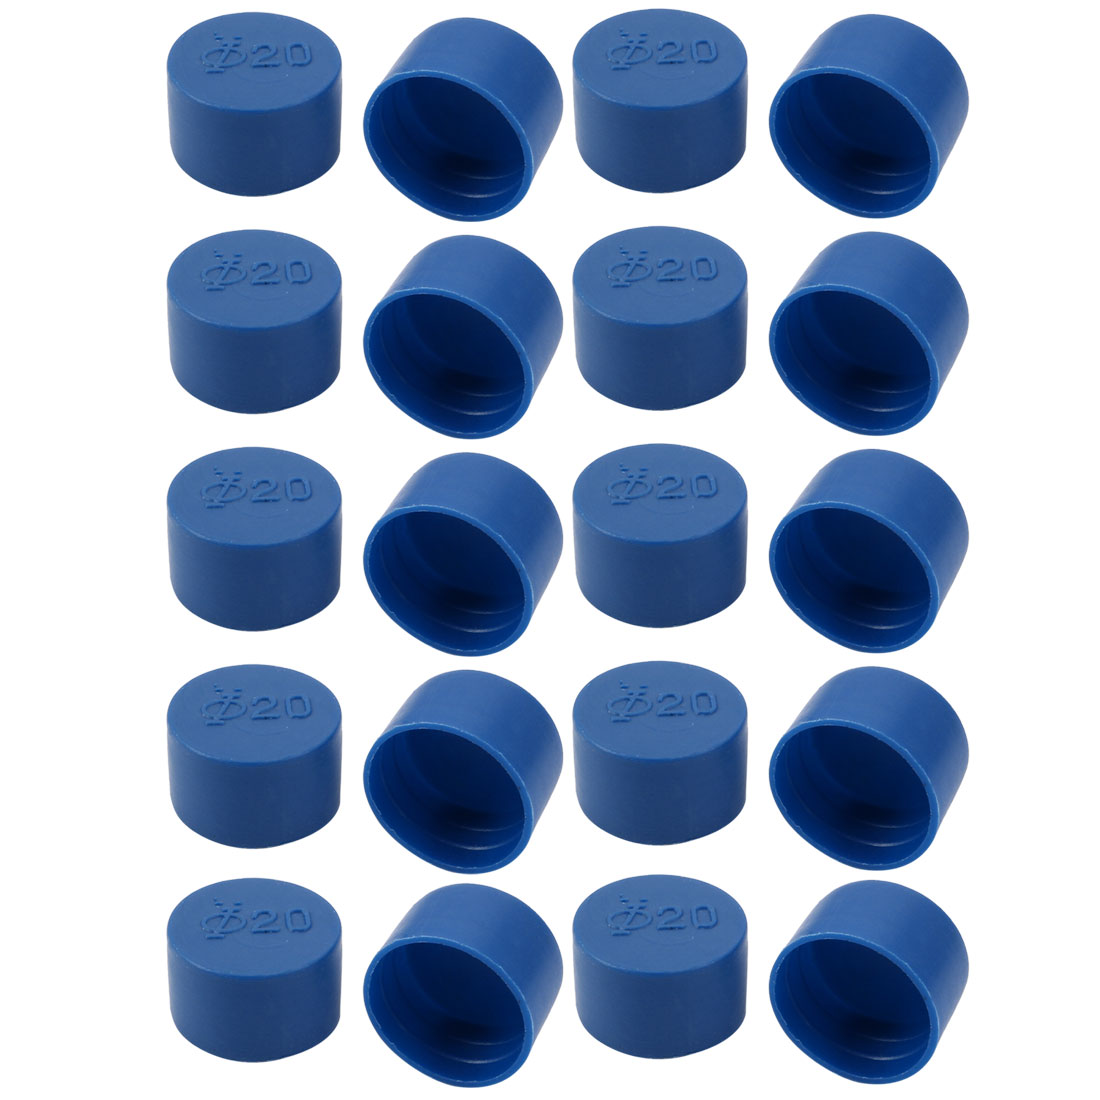 20pcs 20mm Inner Dia PE Plastic End Cap Bolt Thread Protector Tube Cover Blue